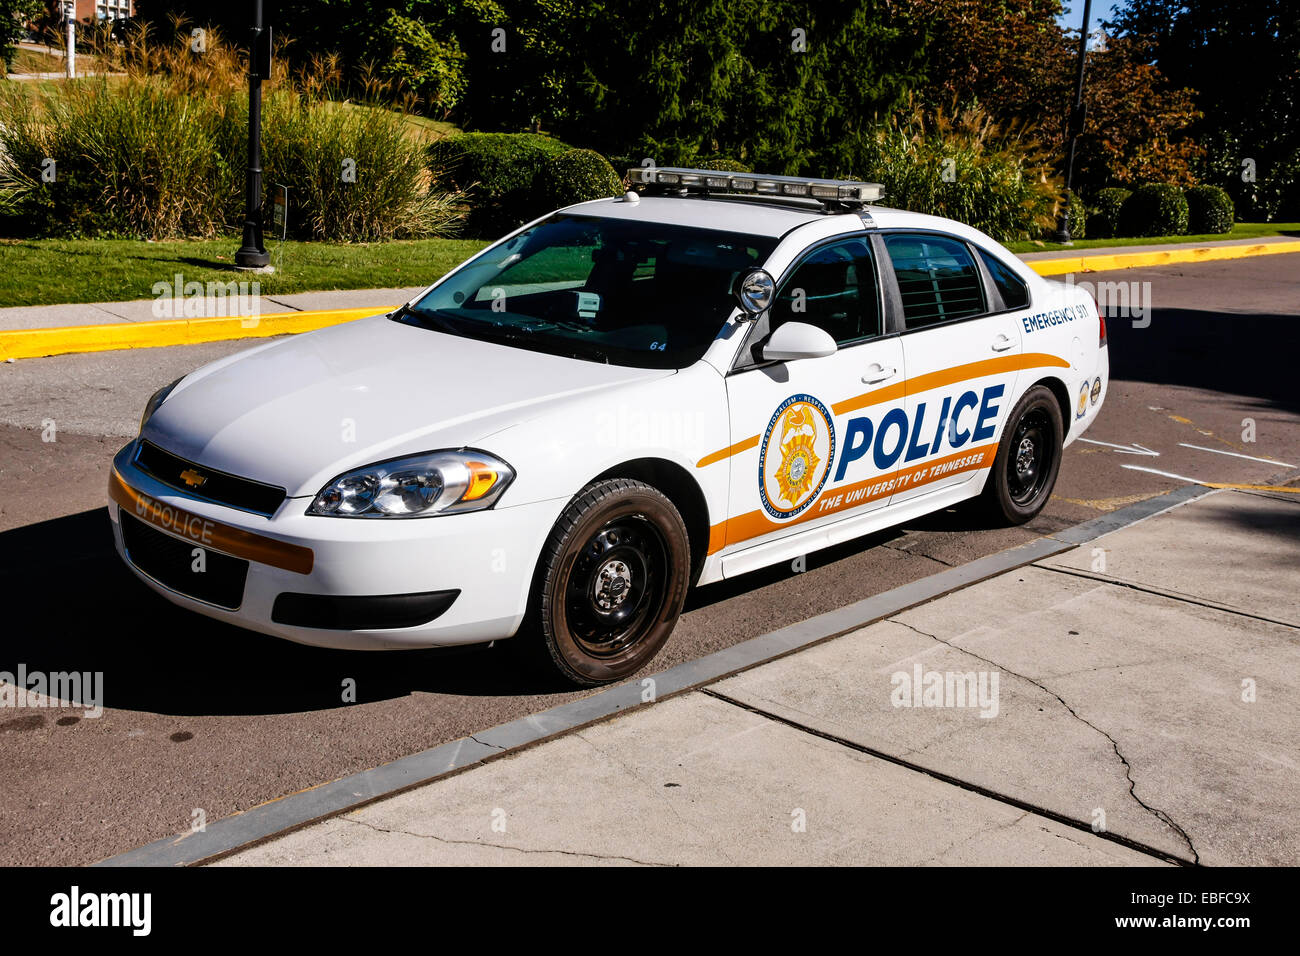 University of Tennessee Police force squad car - Stock Image